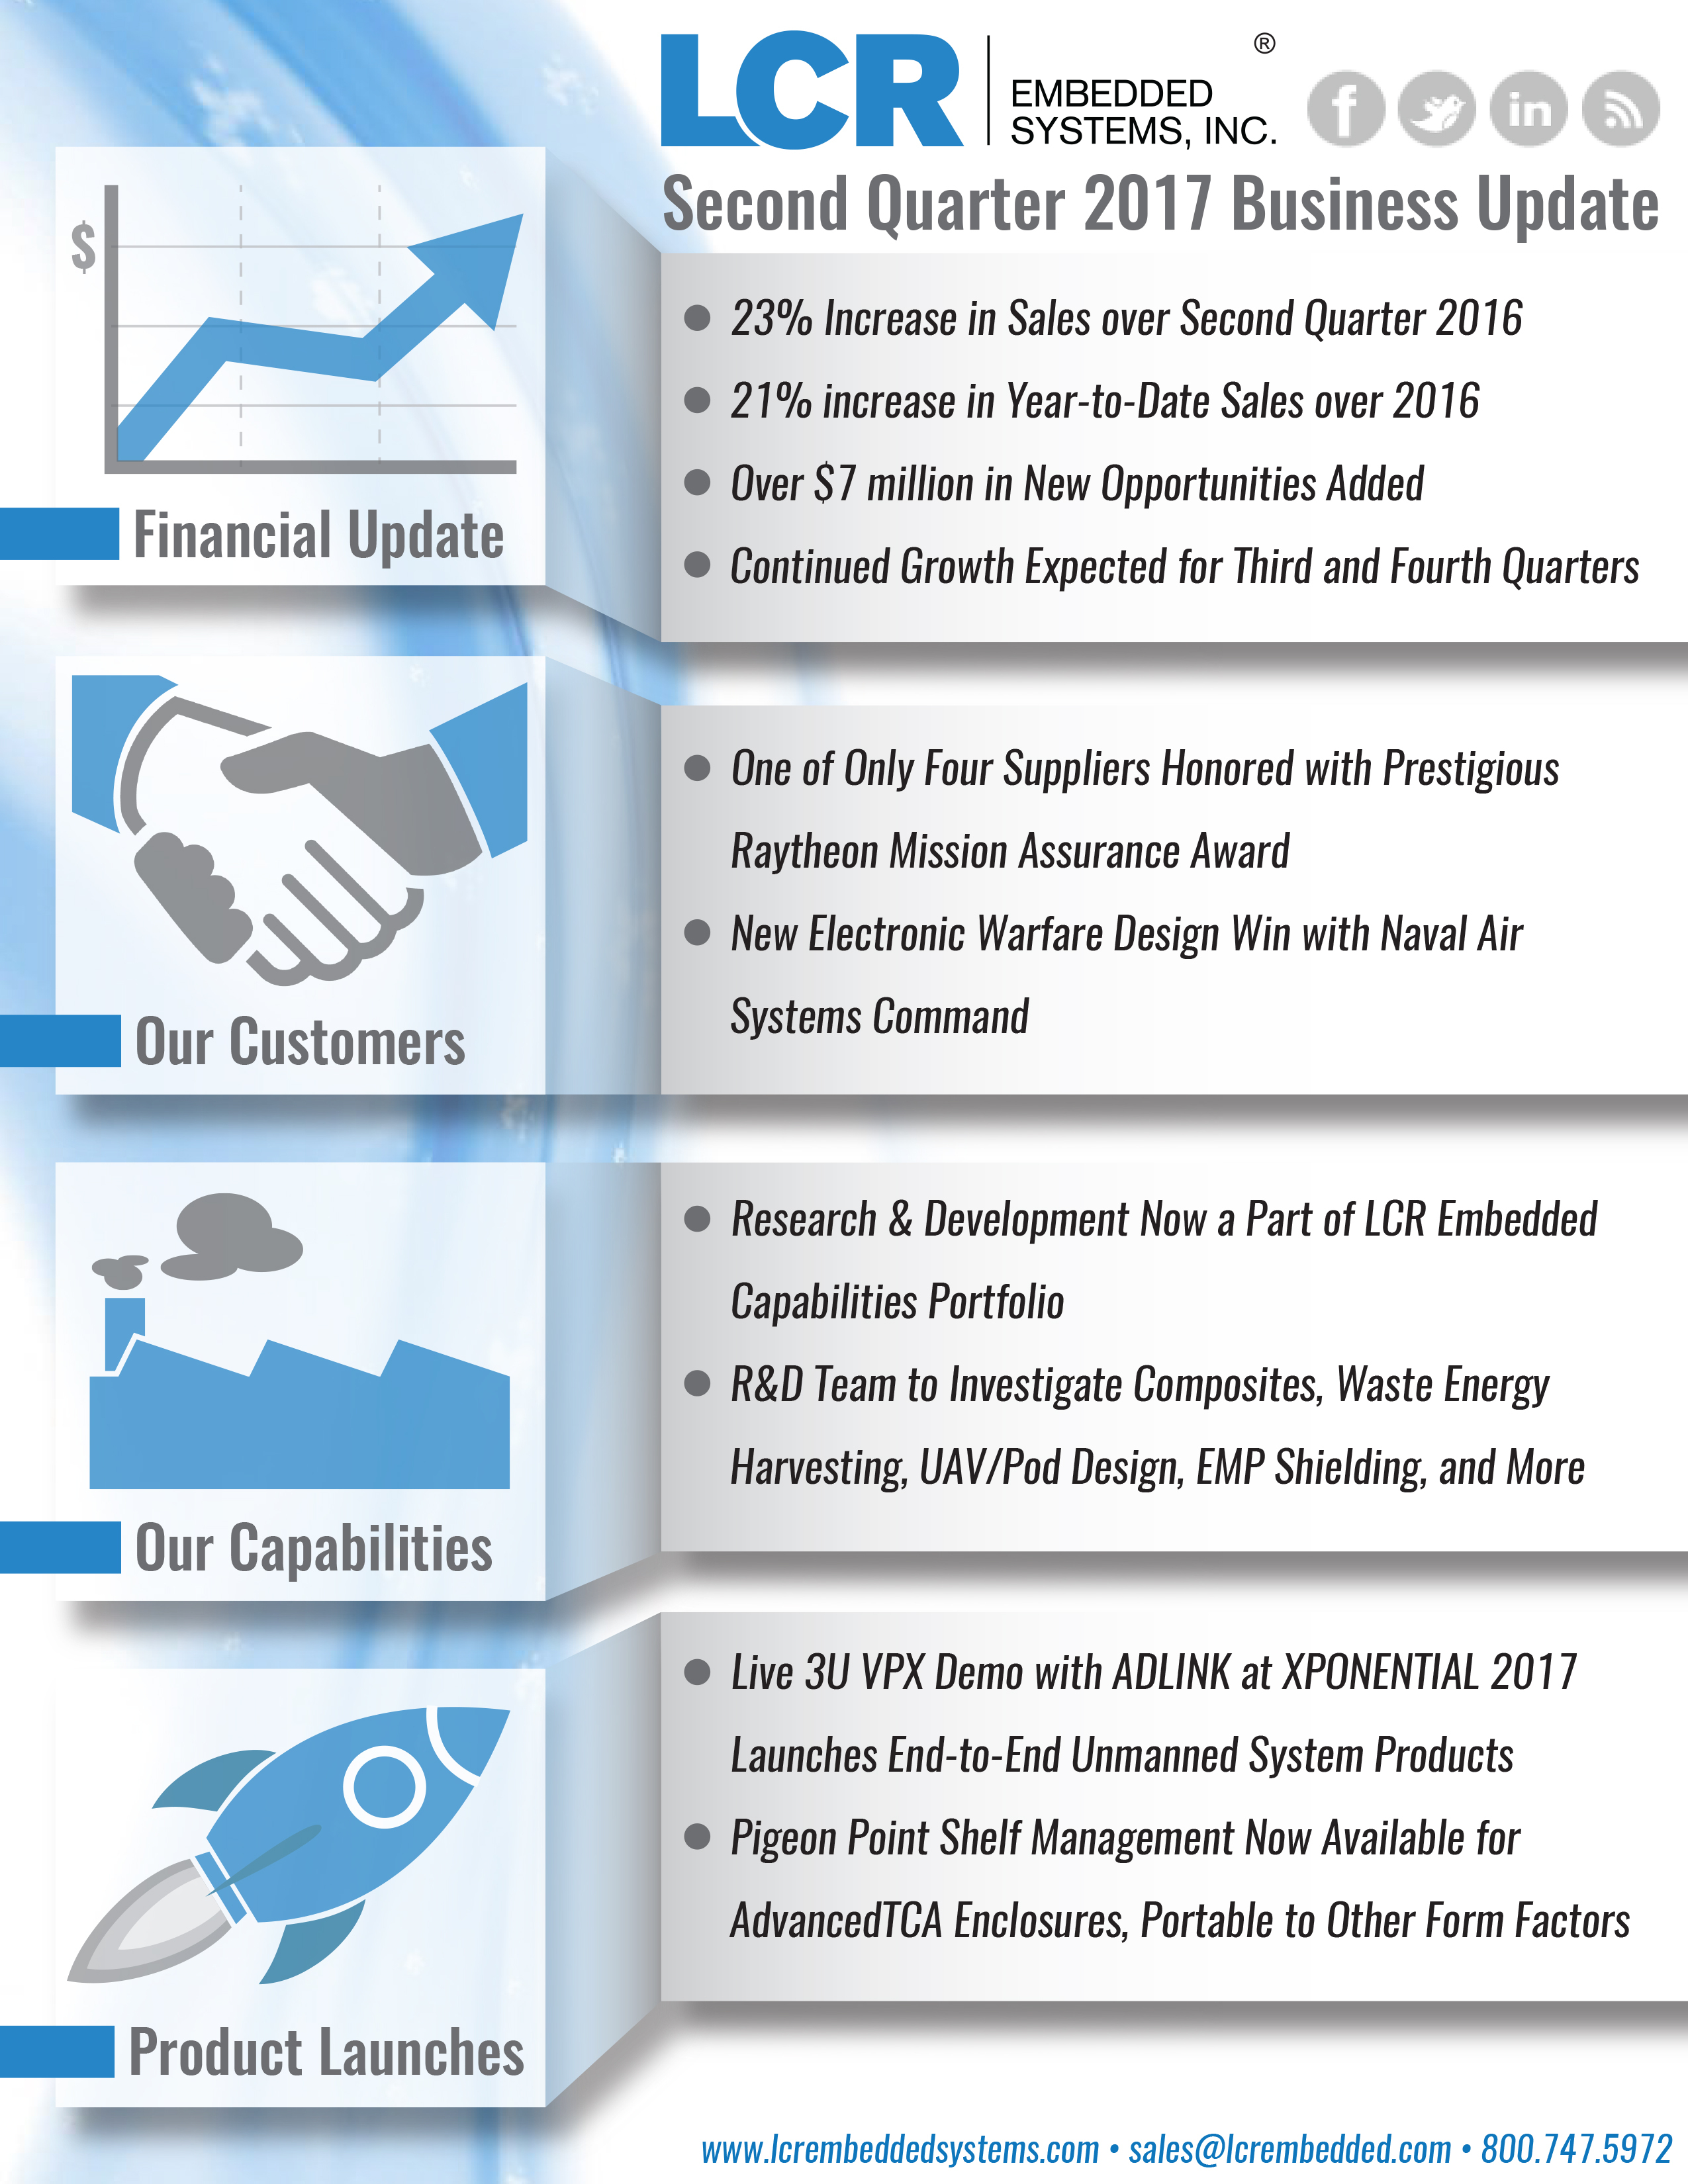 LCR Embedded Systems Reports 2nd Quarter 2017 Highlights | Business Wire